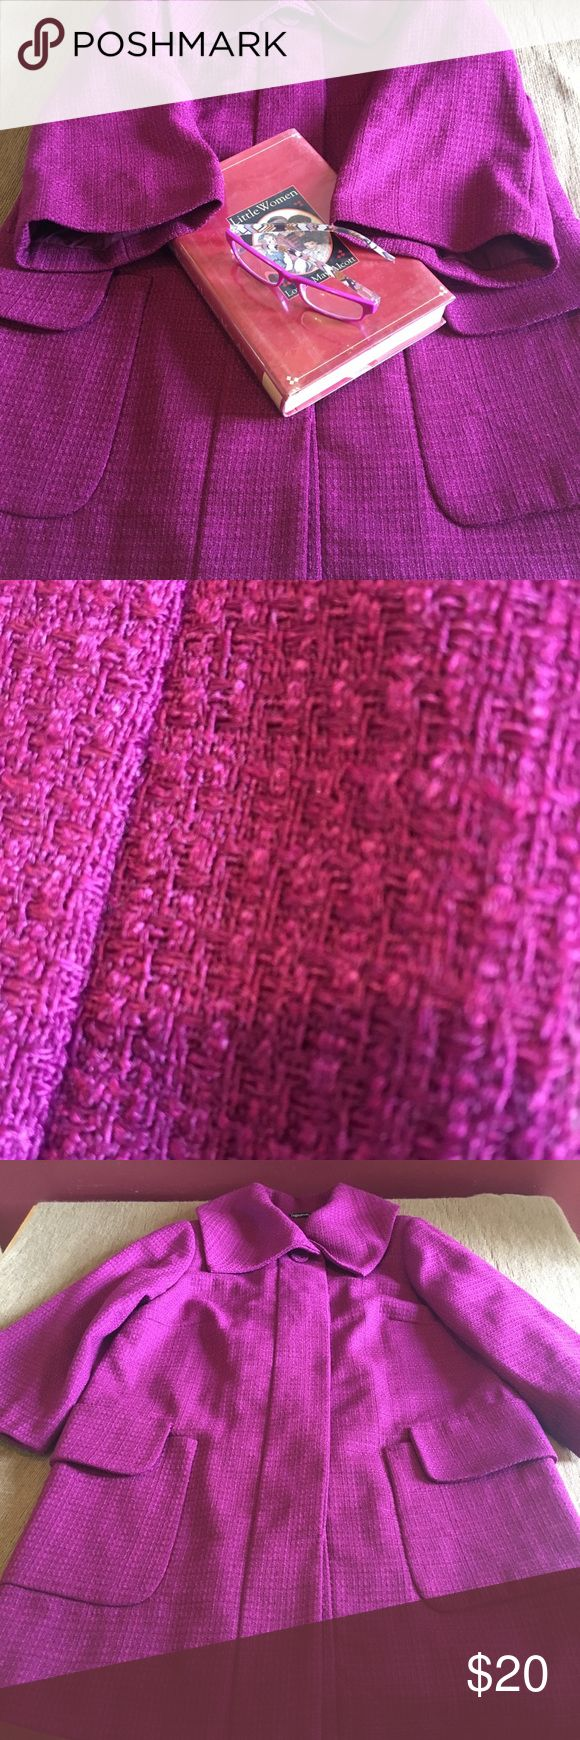 """📖May📖 gorgeous fuchsia tweed jacket size 8 COME JOIN THE STORY May, beautiful fuchsia tweed jacket. The color is so rich!  Size 8 measurements: shoulders 15"""", pits 20"""", length 33 1/2"""", arm length 18 1/2"""". Choir boy sleeves so check measurements as they are shorter than normal. Great condition. Relativity Relativity Jackets & Coats Pea Coats"""